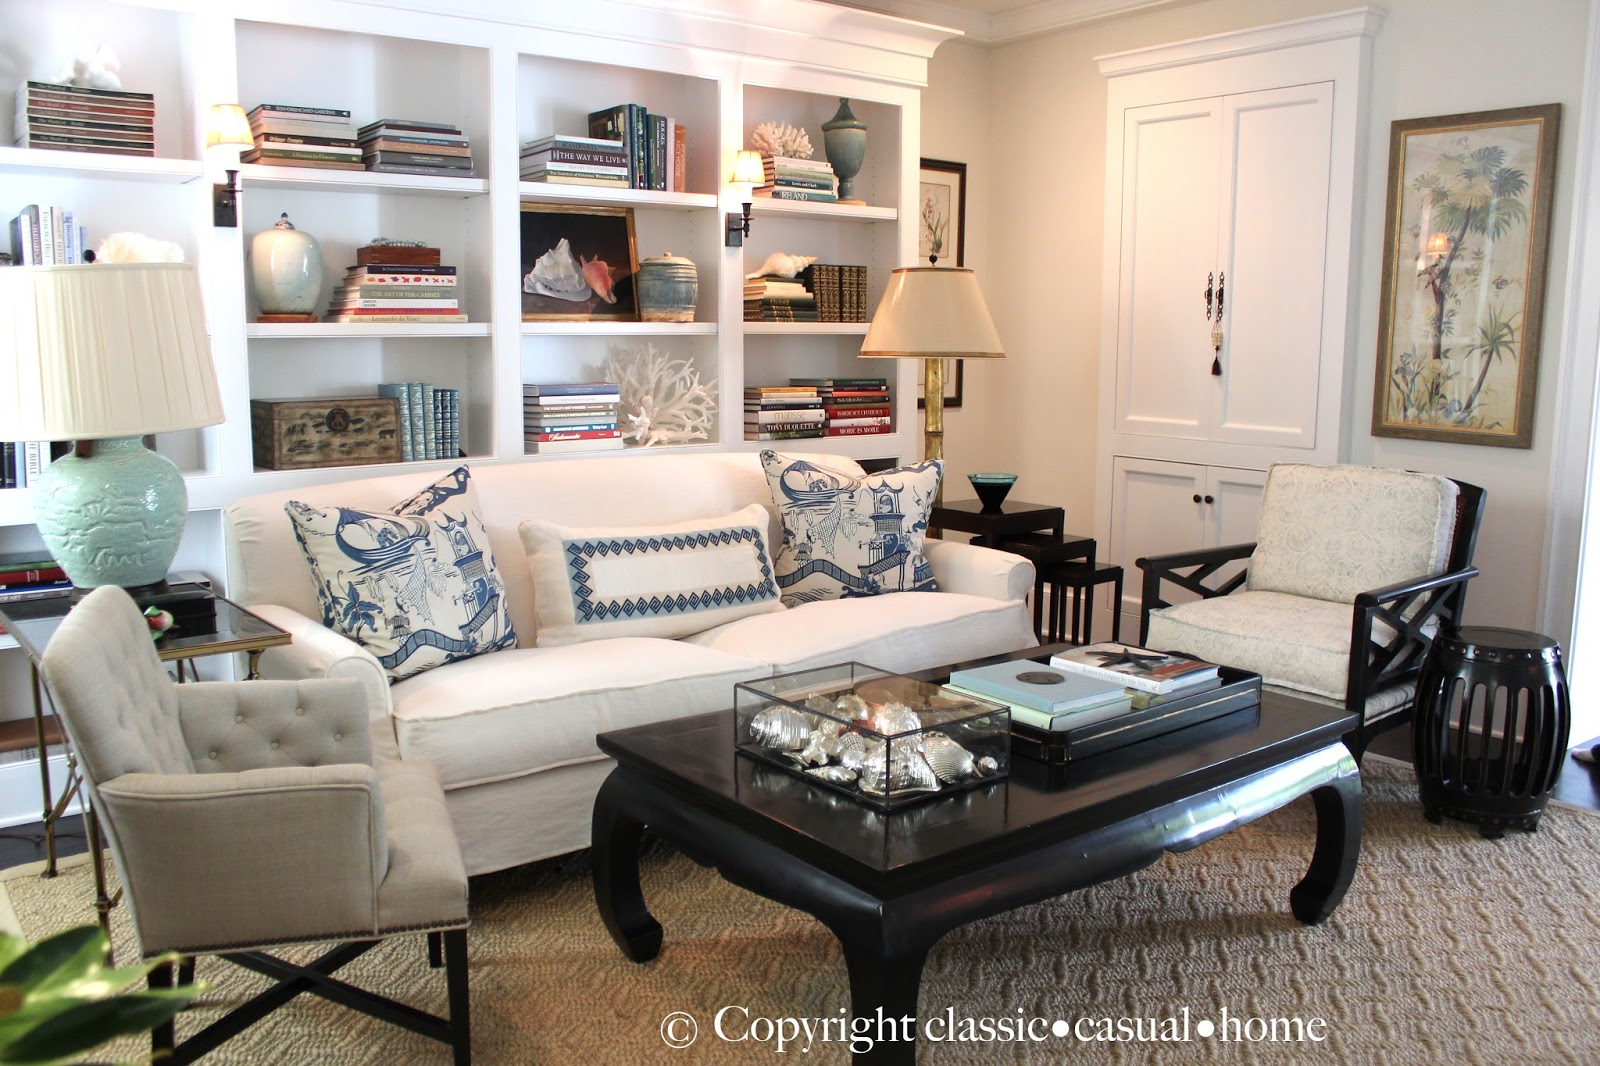 Pottery Barn For Living Room Classic O Casual O Home July 2014